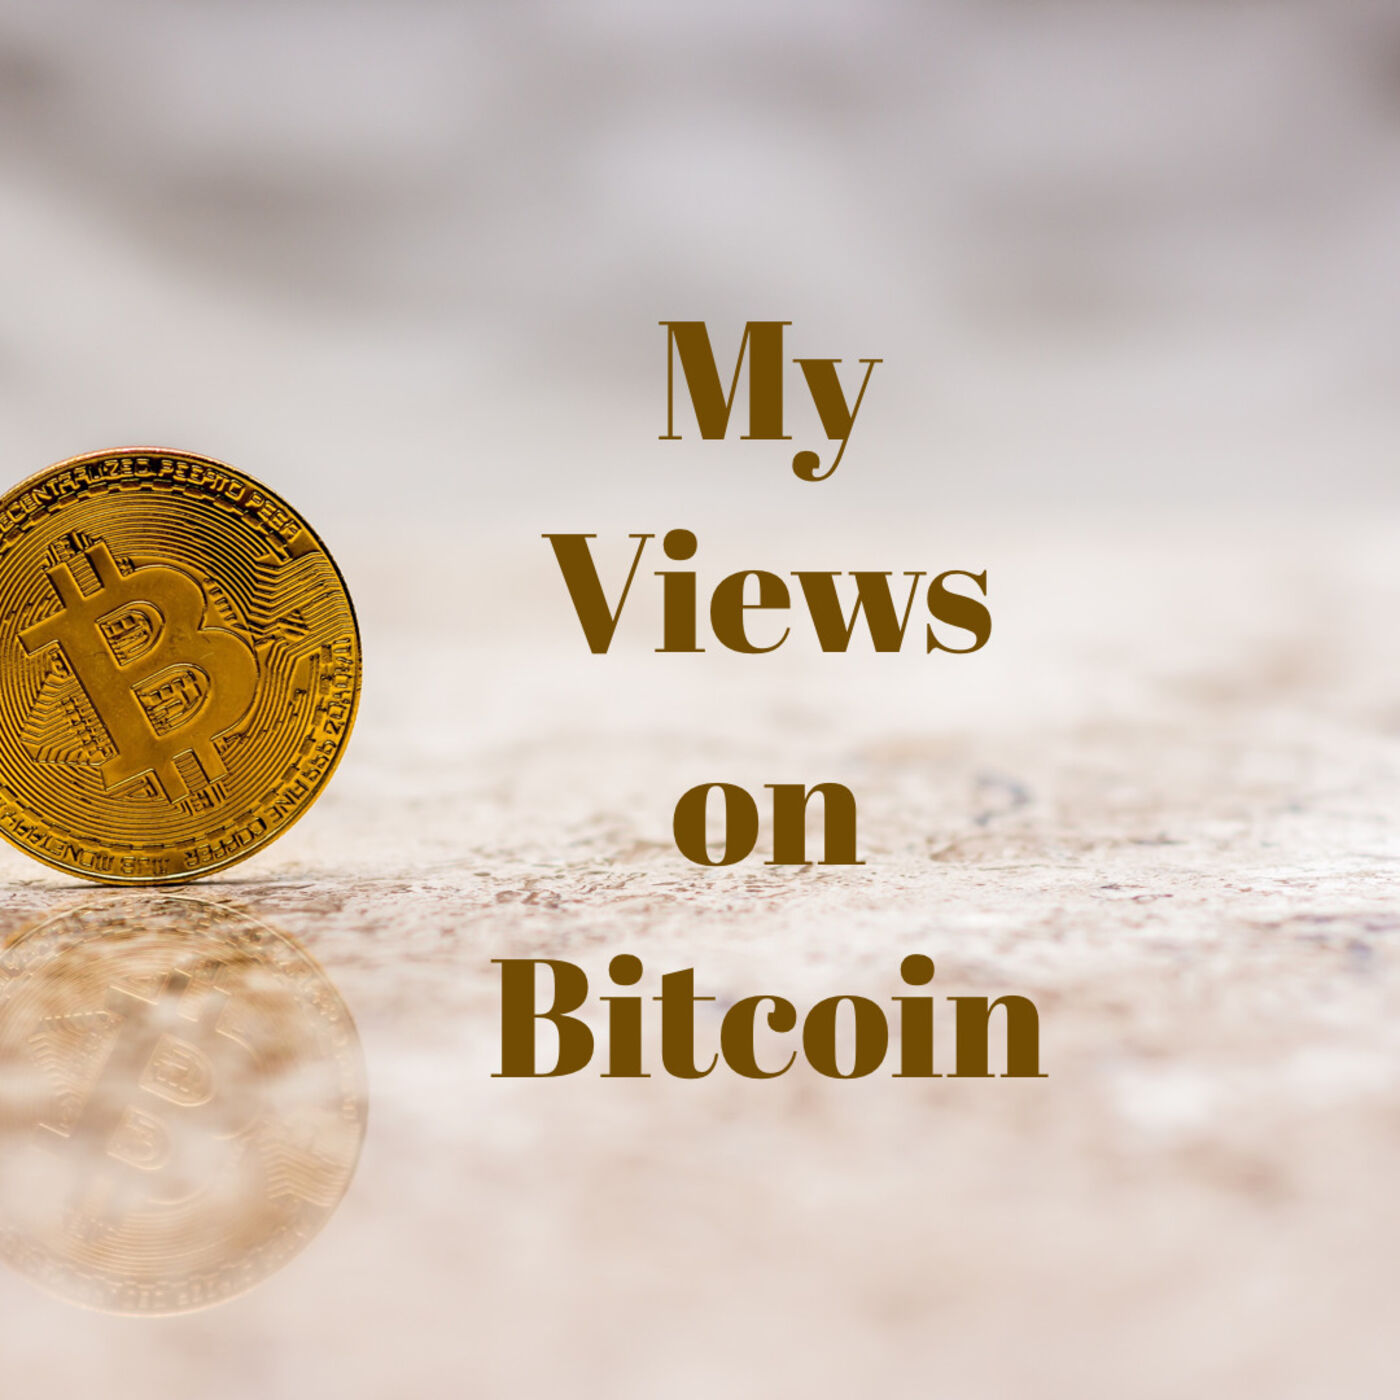 My View on Bitcoin